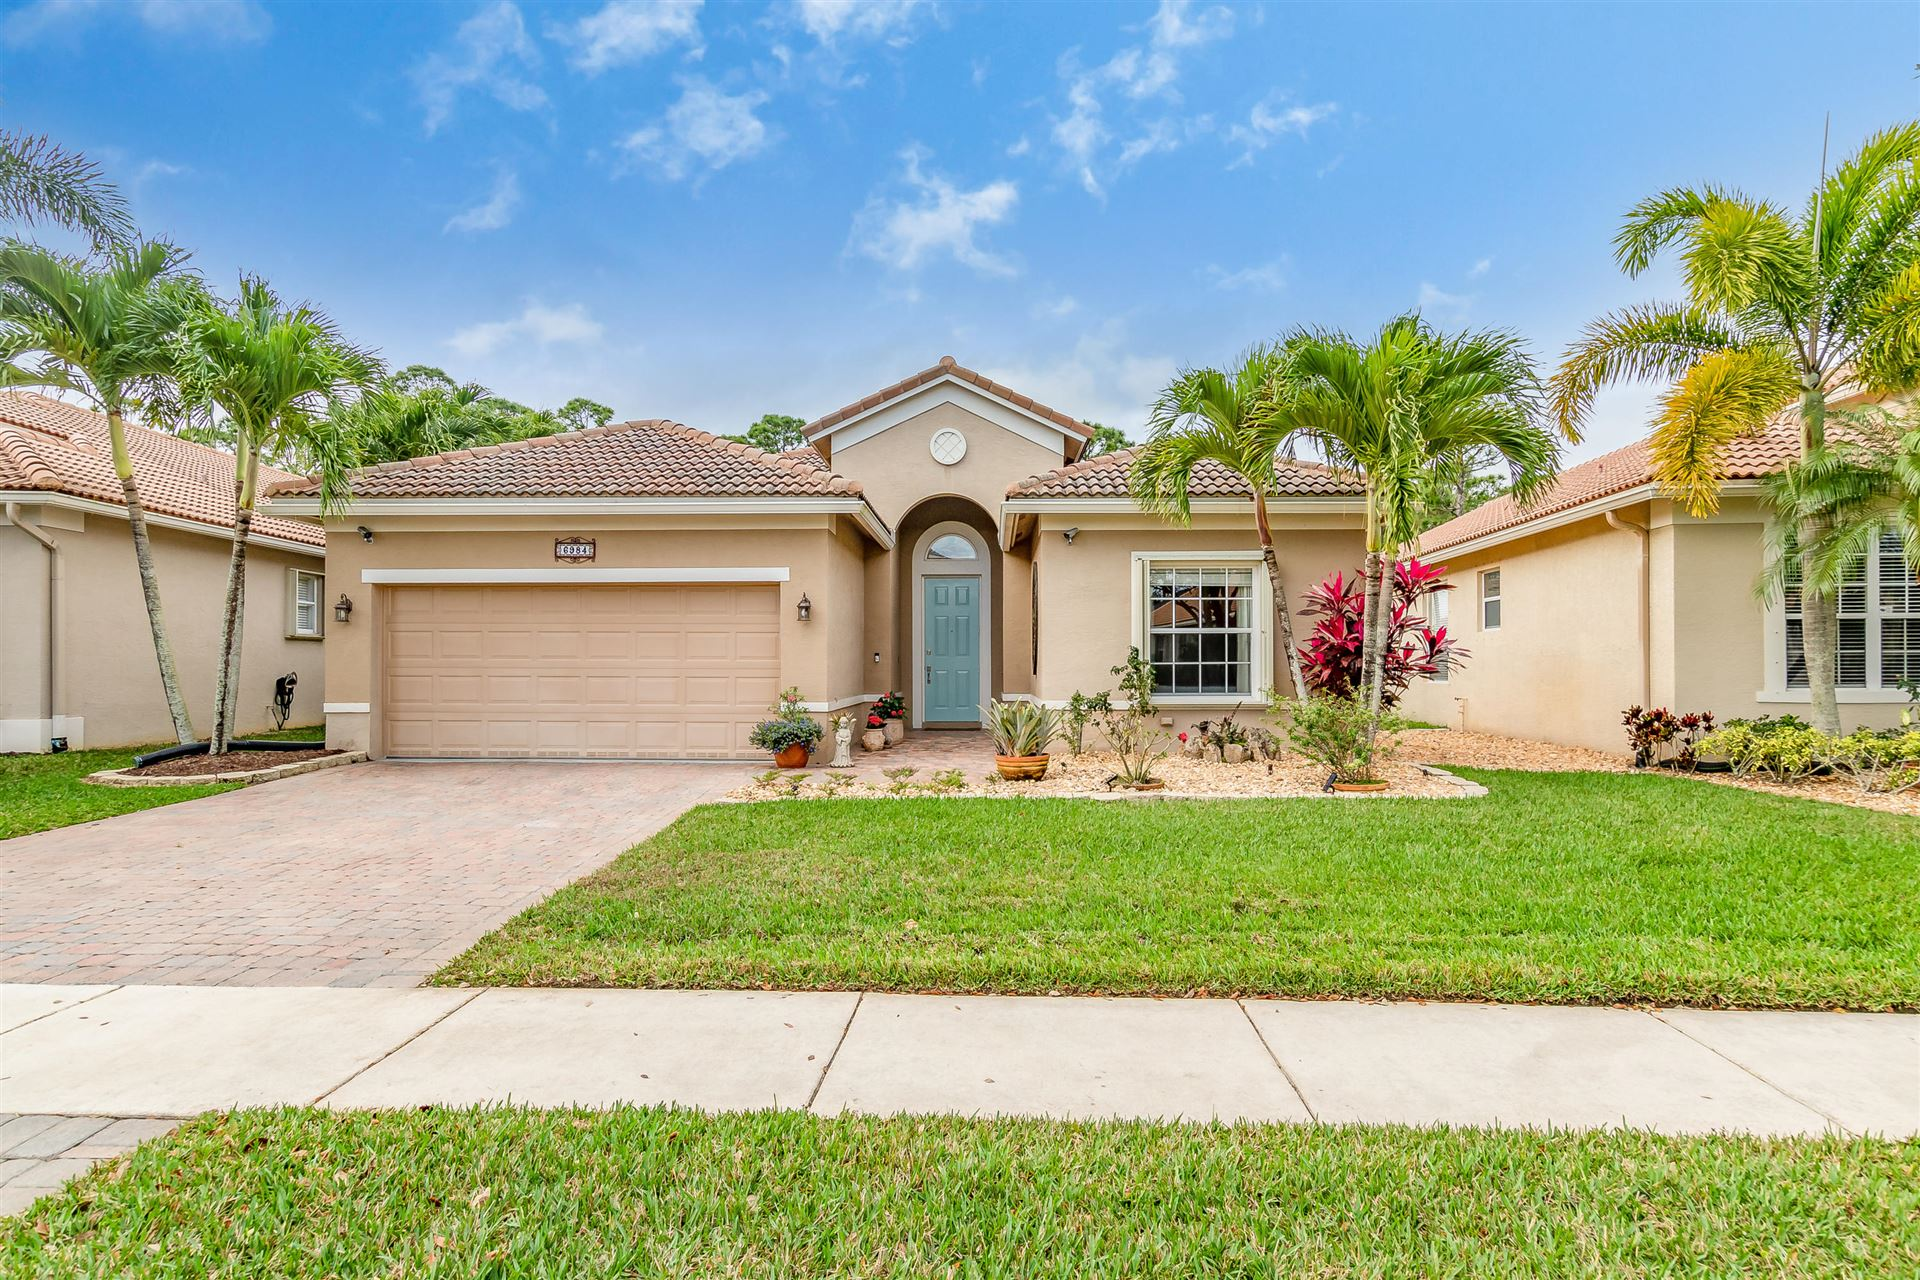 6984 SE Cricket Court, Stuart, FL 34997 - #: RX-10693441